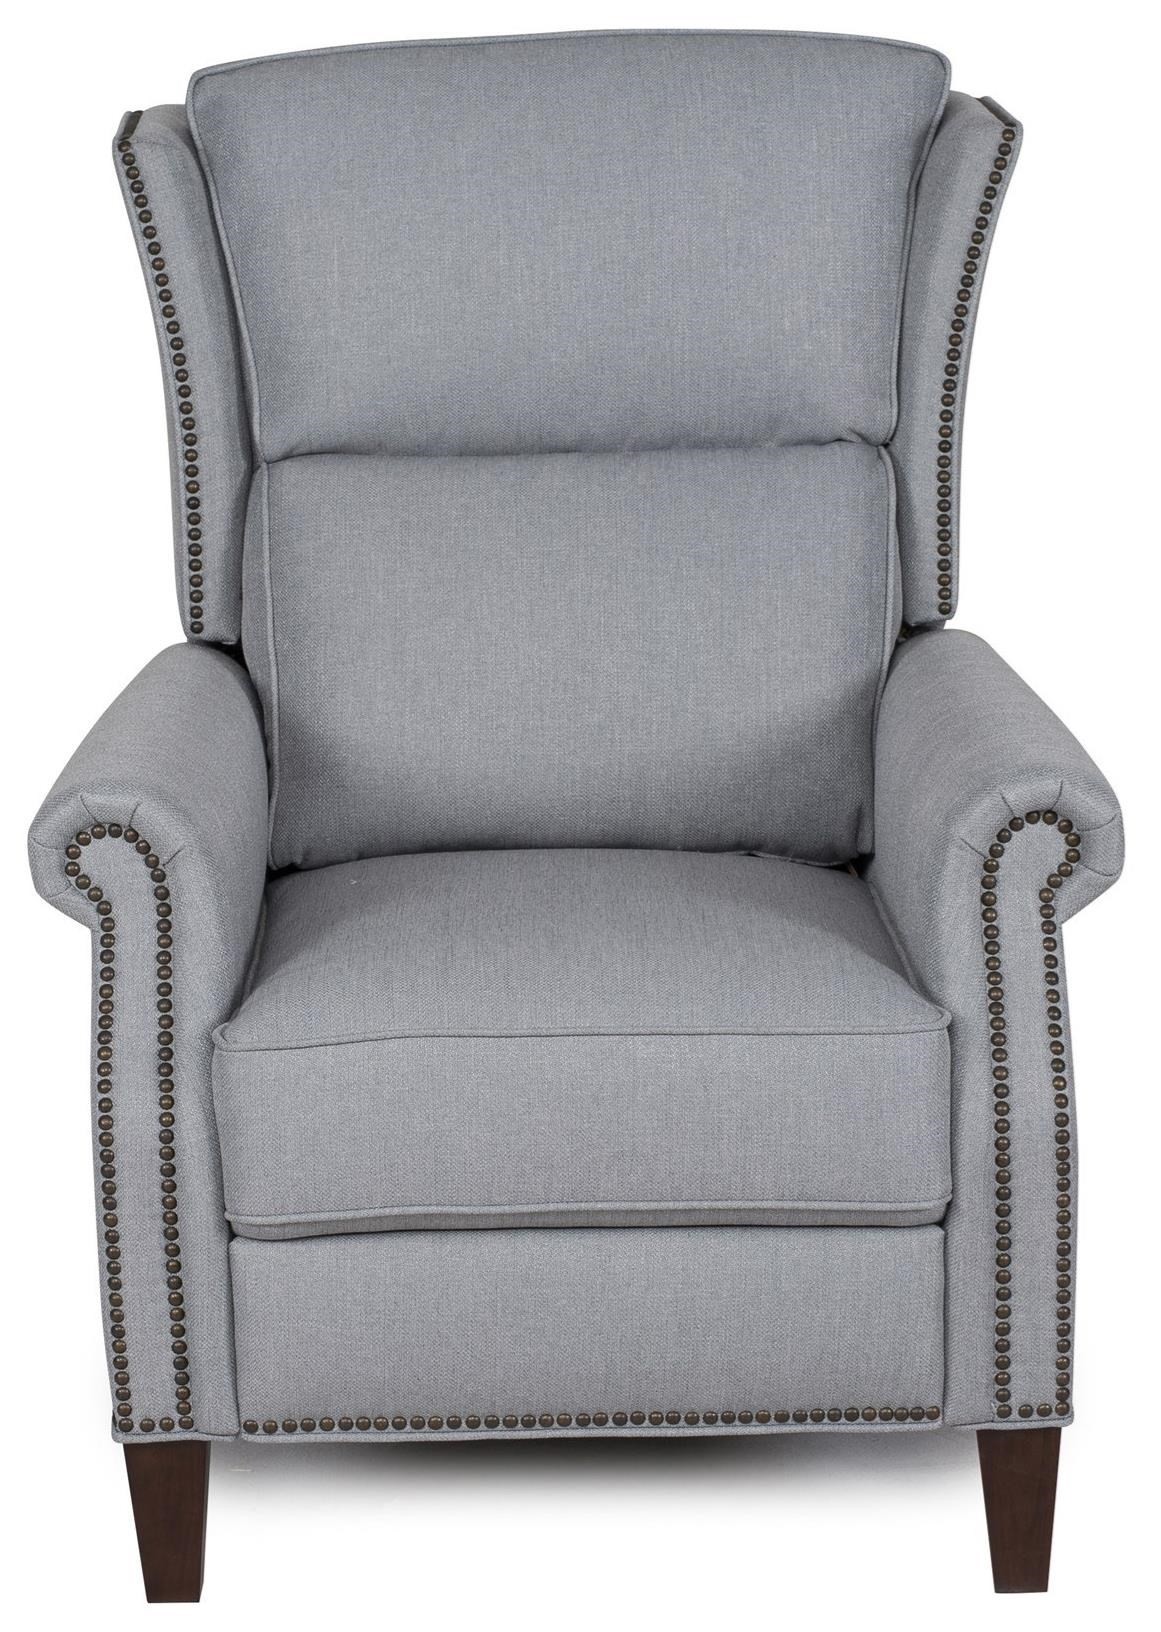 1524 Push Thru Arm Recliner by Synergy Home Furnishings at Stoney Creek Furniture